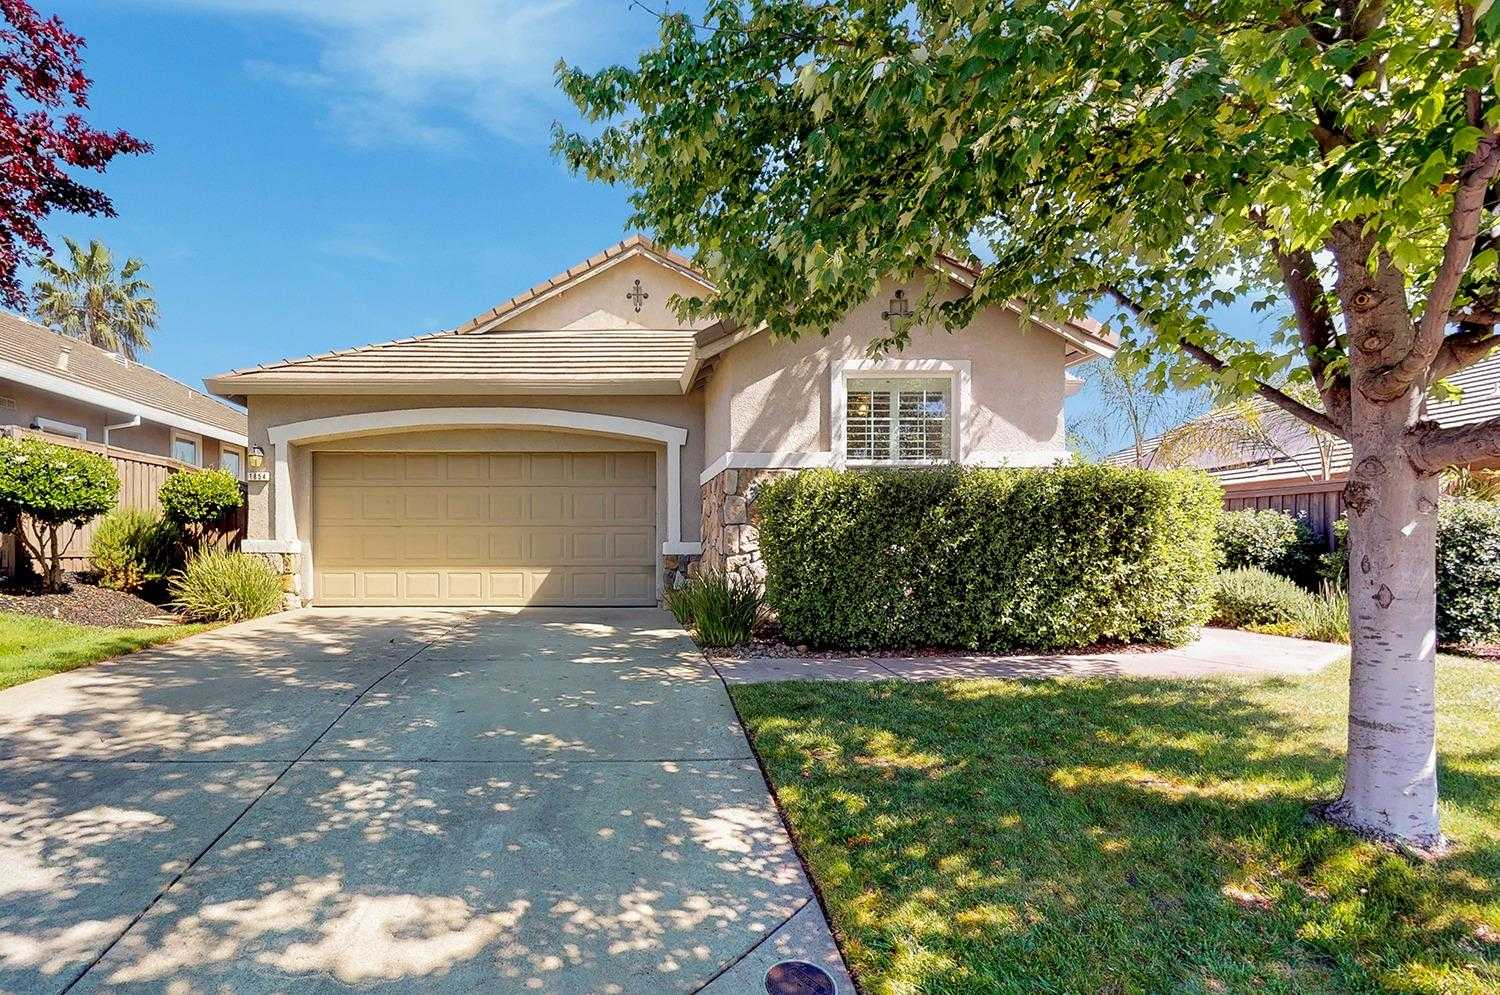 $562,000 - 3Br/2Ba -  for Sale in Folsom